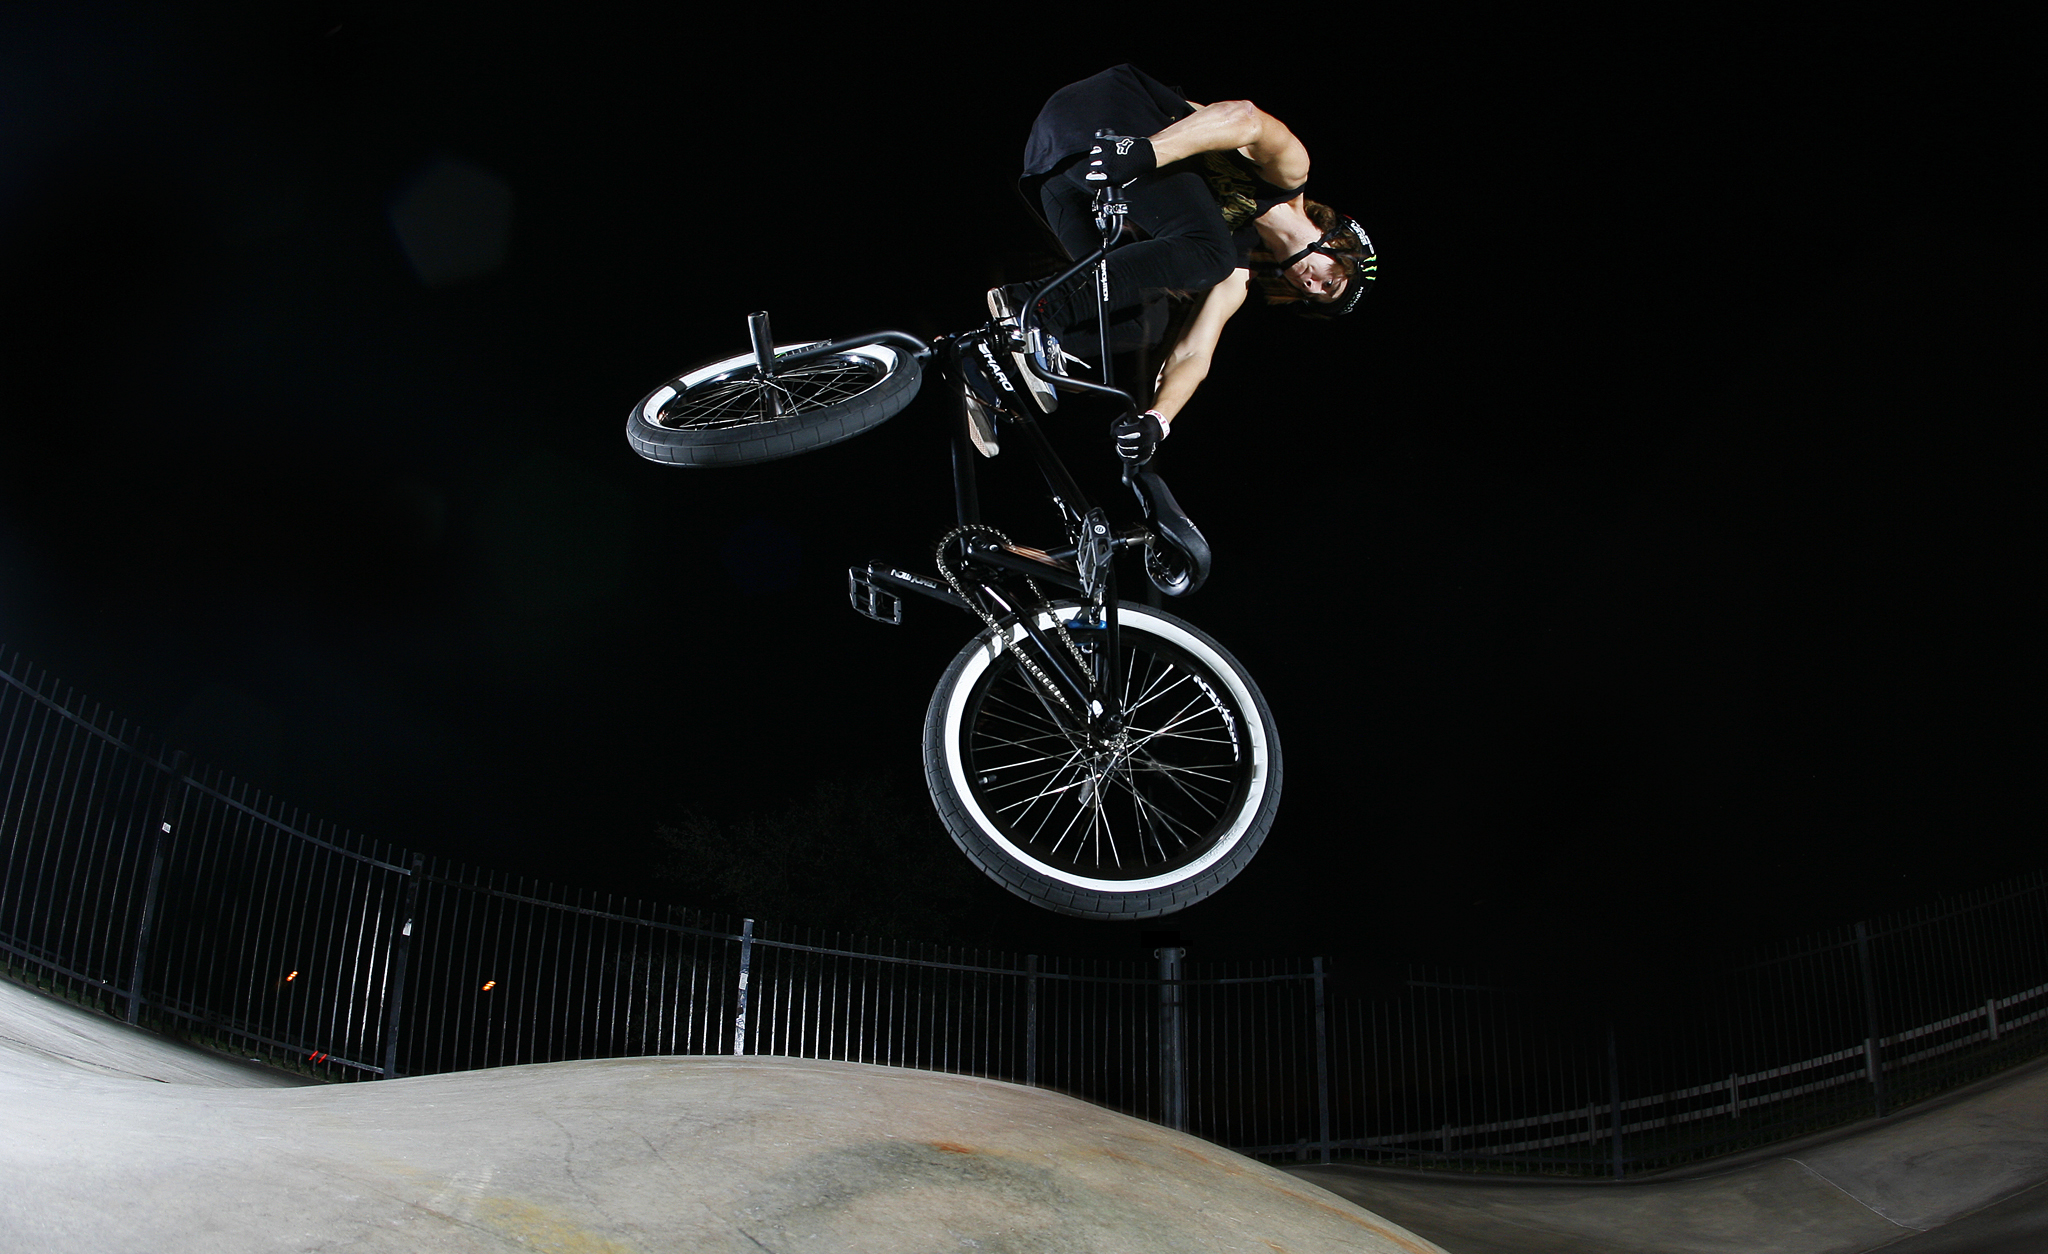 /photo/2012/1231/as_bmx_casey10_2048.jpg